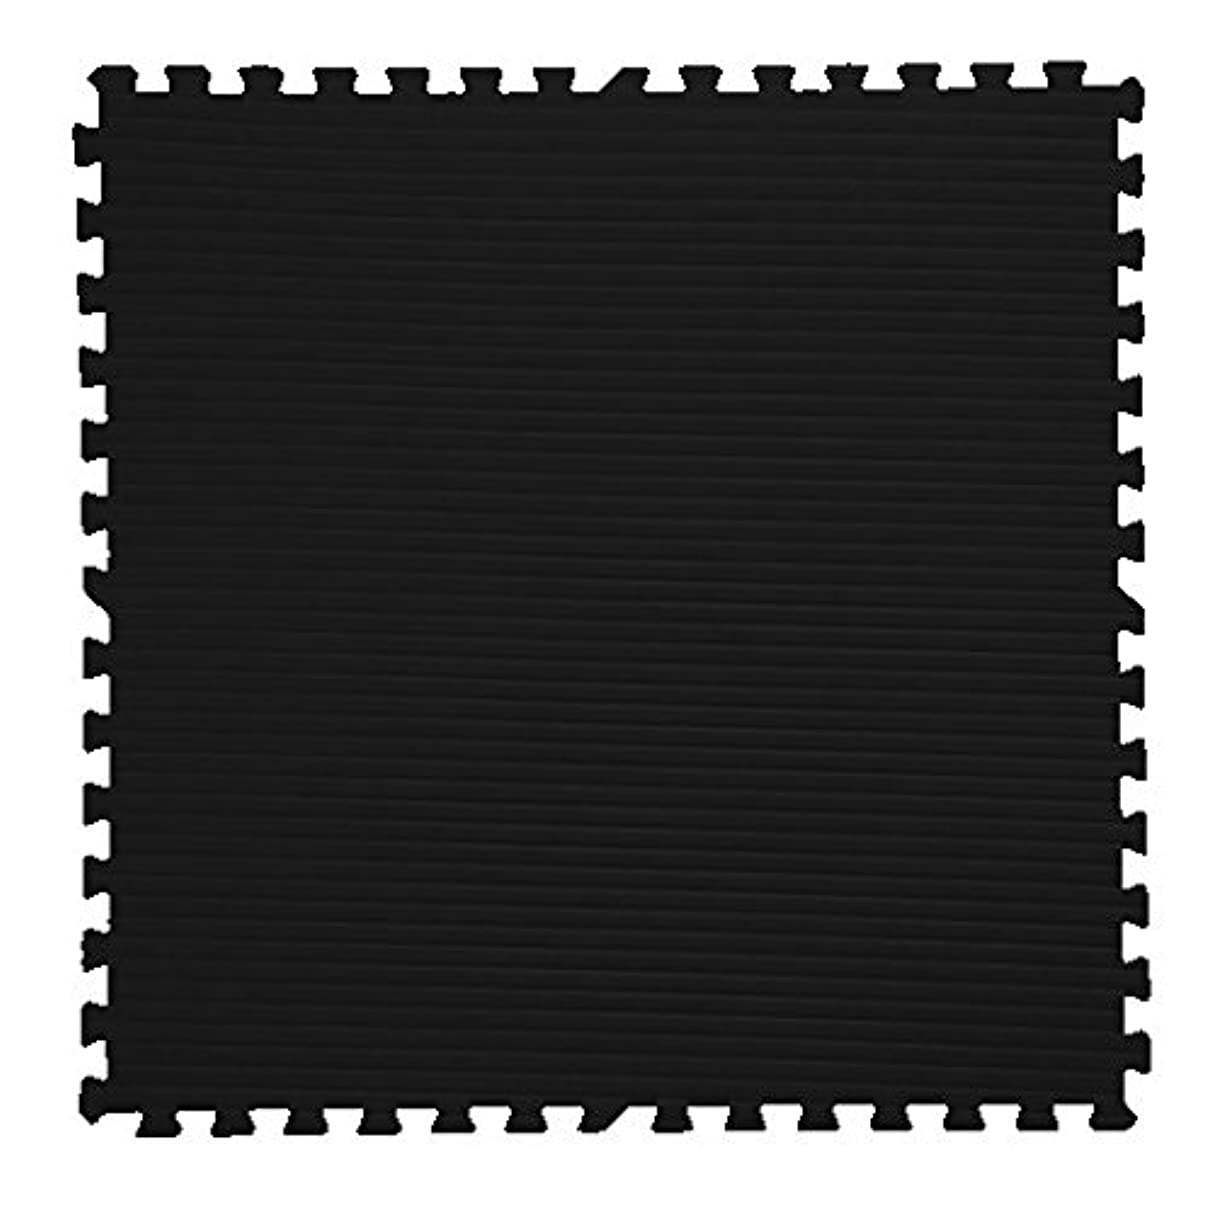 Get Rung Martial Art Mats (1 Inch) 25mm Perfect for karate, martial arts, judo, jiu jitsu, grapping Interlocking Puzzle Mats